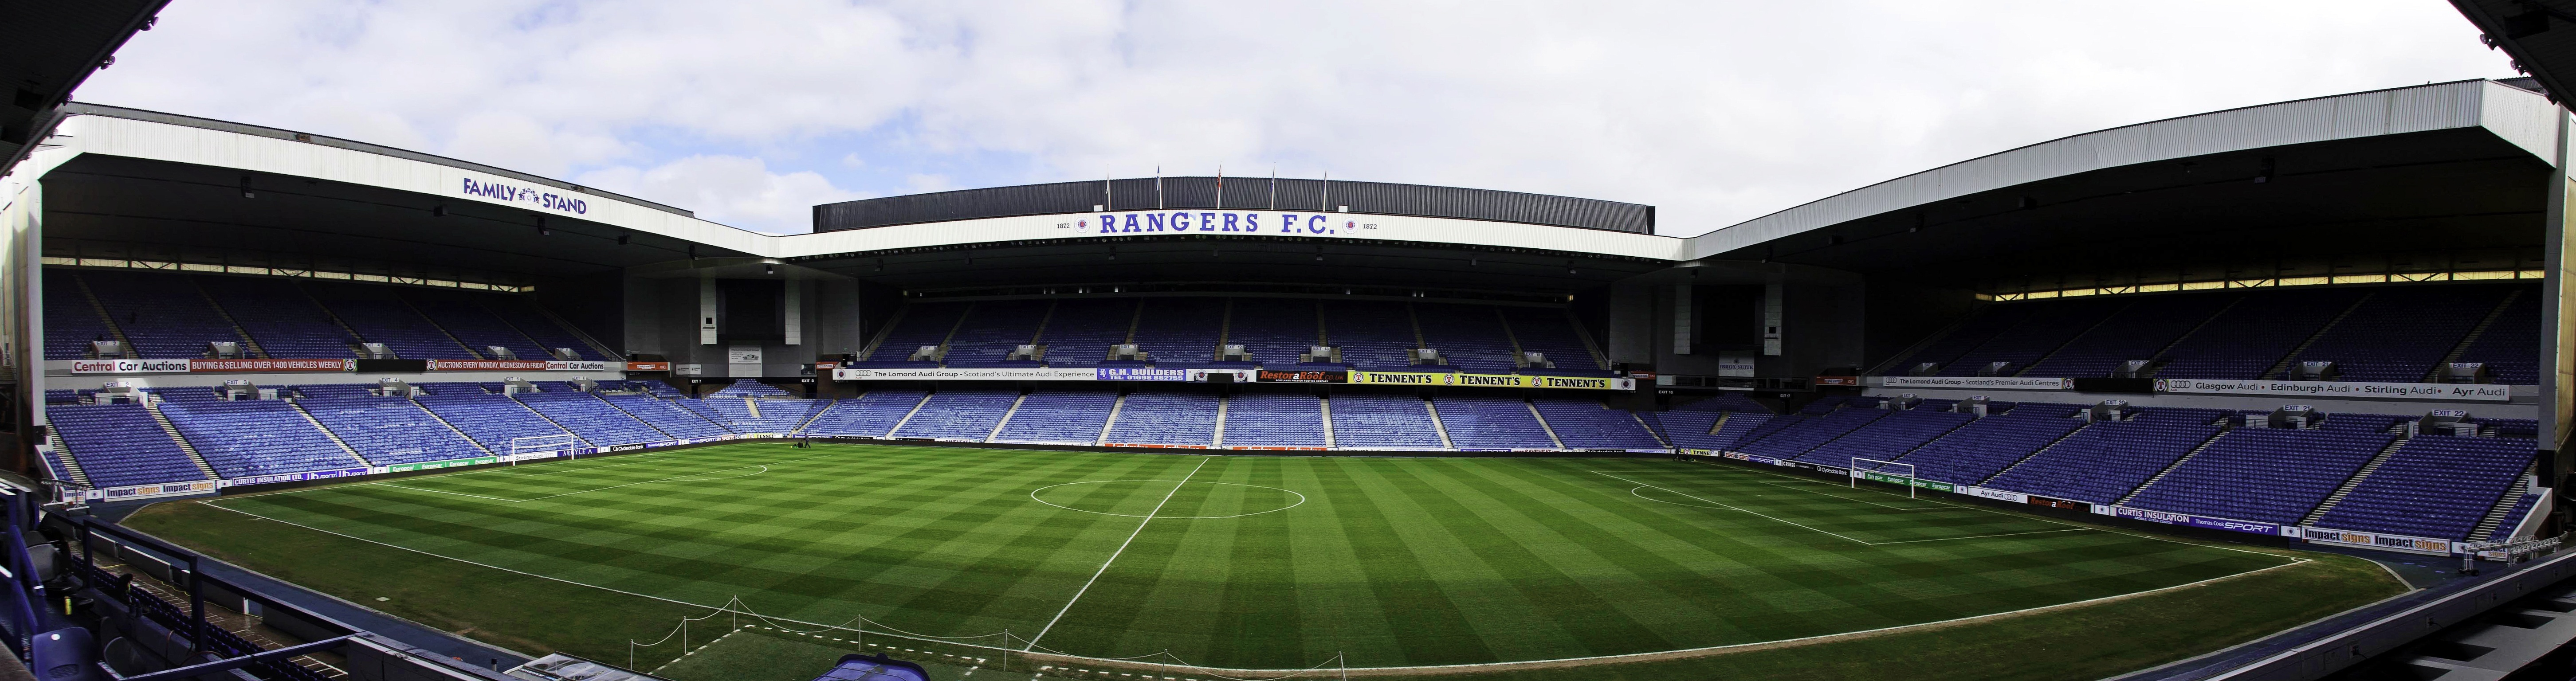 Ibrox Park on Latest When To Write Out Numbers